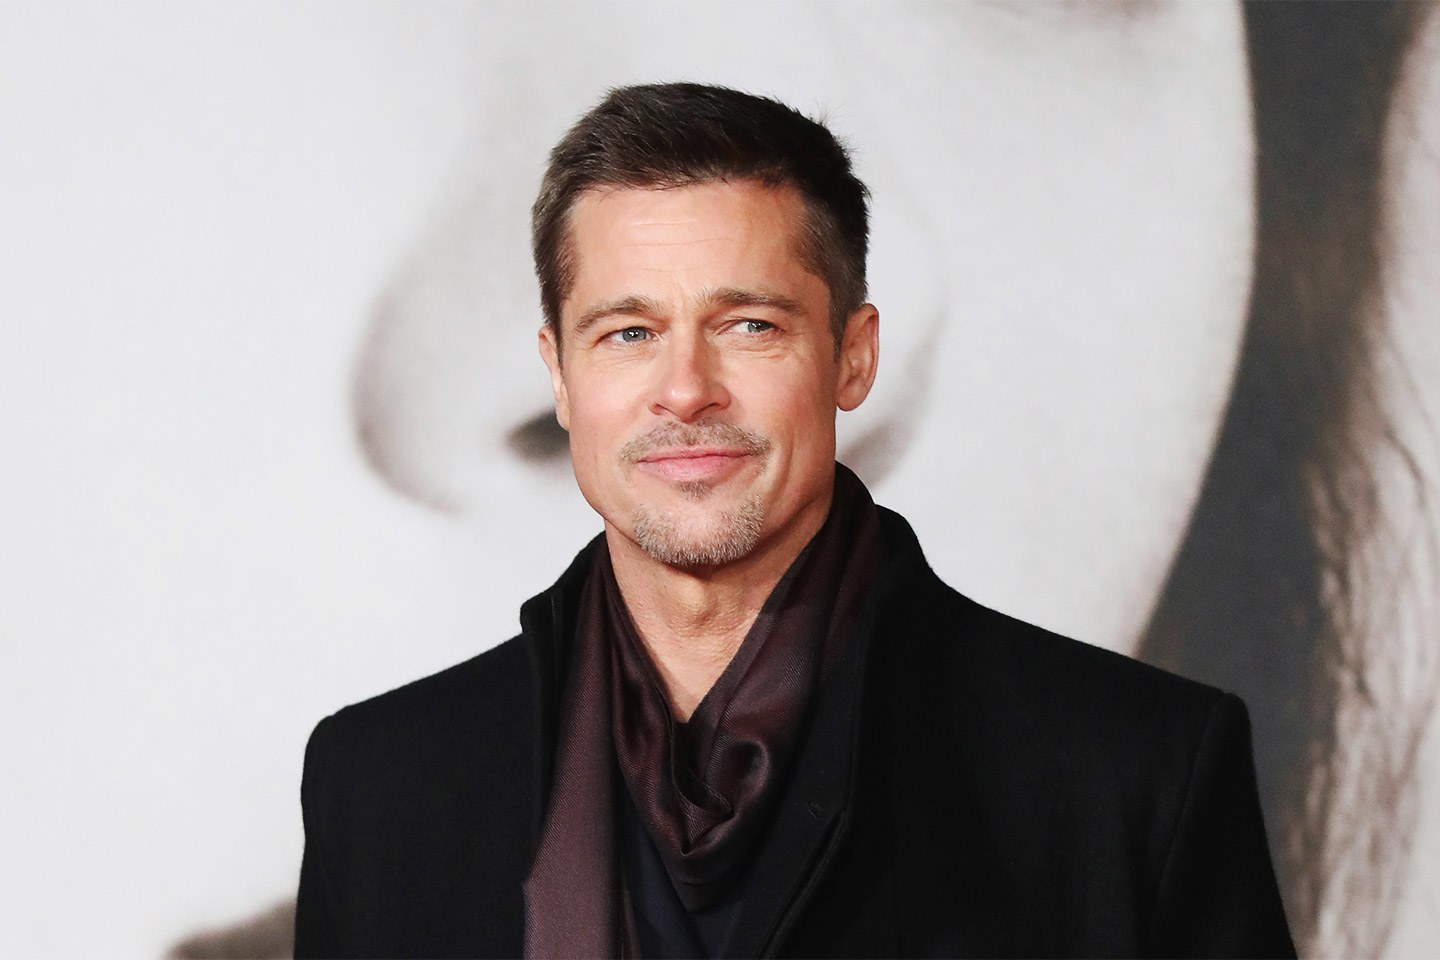 brad-pitt-best-Hollywood-hairstyles-for-men-sharp-corners-celebrity-best-actor-2017